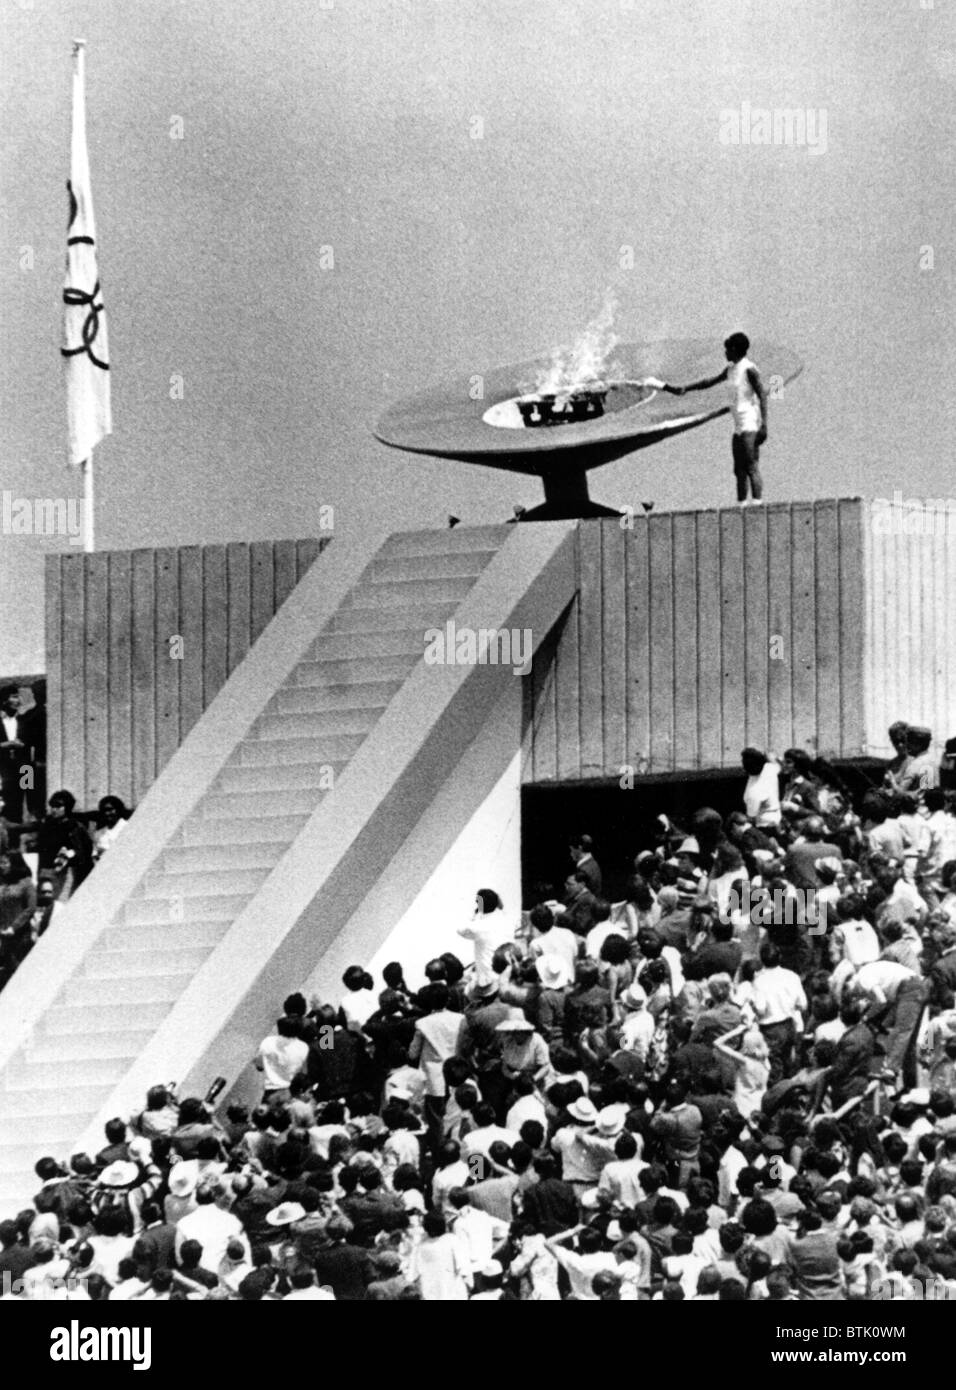 The Olympic cauldron is lit by Mexican hurdler Enriqueta Basilio during the opening ceremony of the 1968 Summer Stock Photo